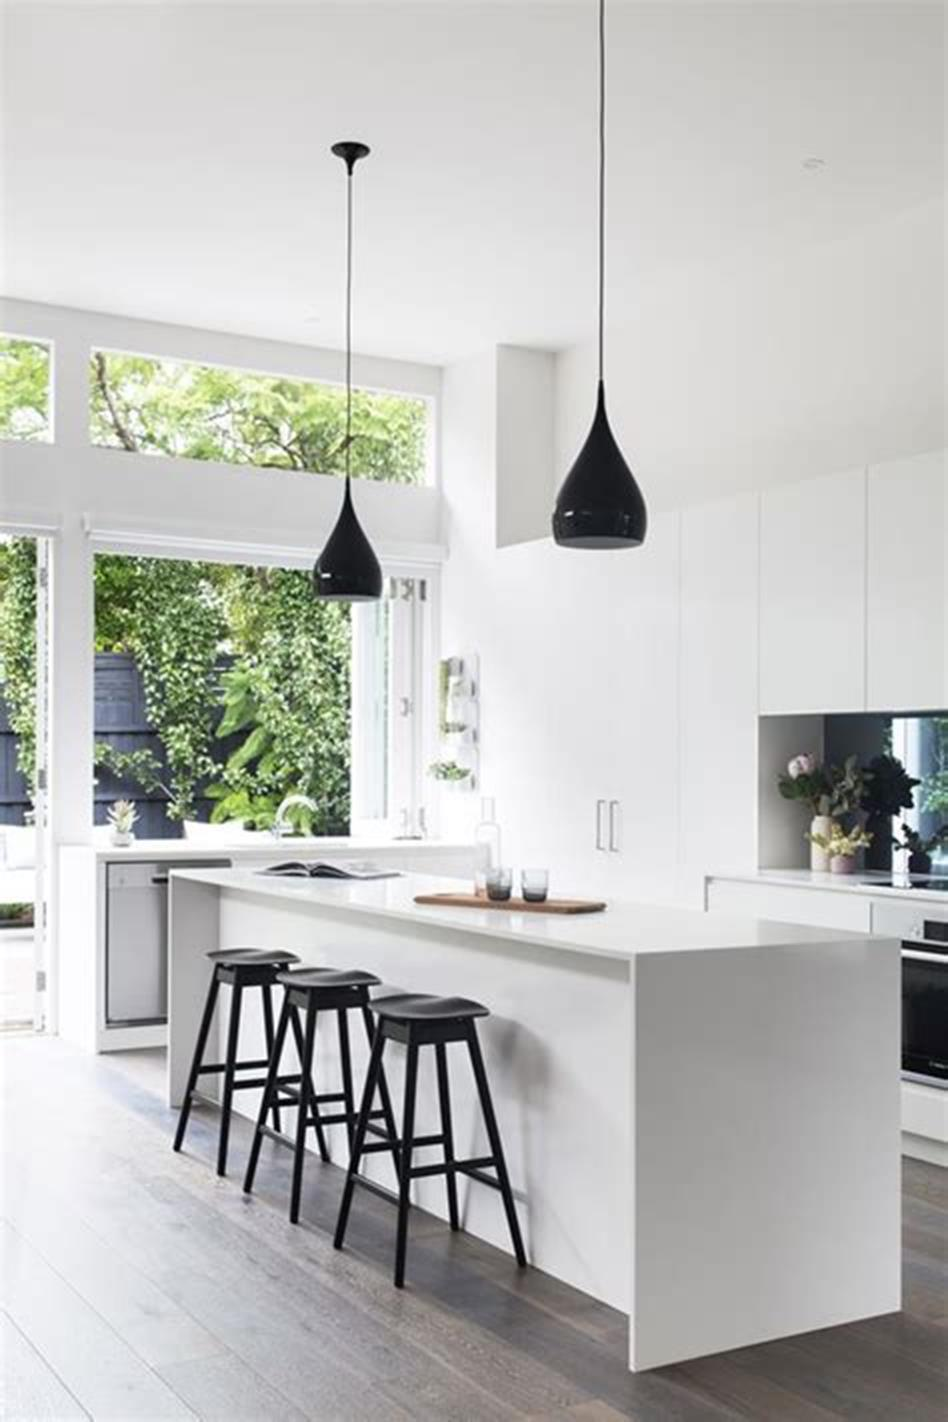 35 Stunning Contemporary Kitchen Design Ideas Youll Love 41